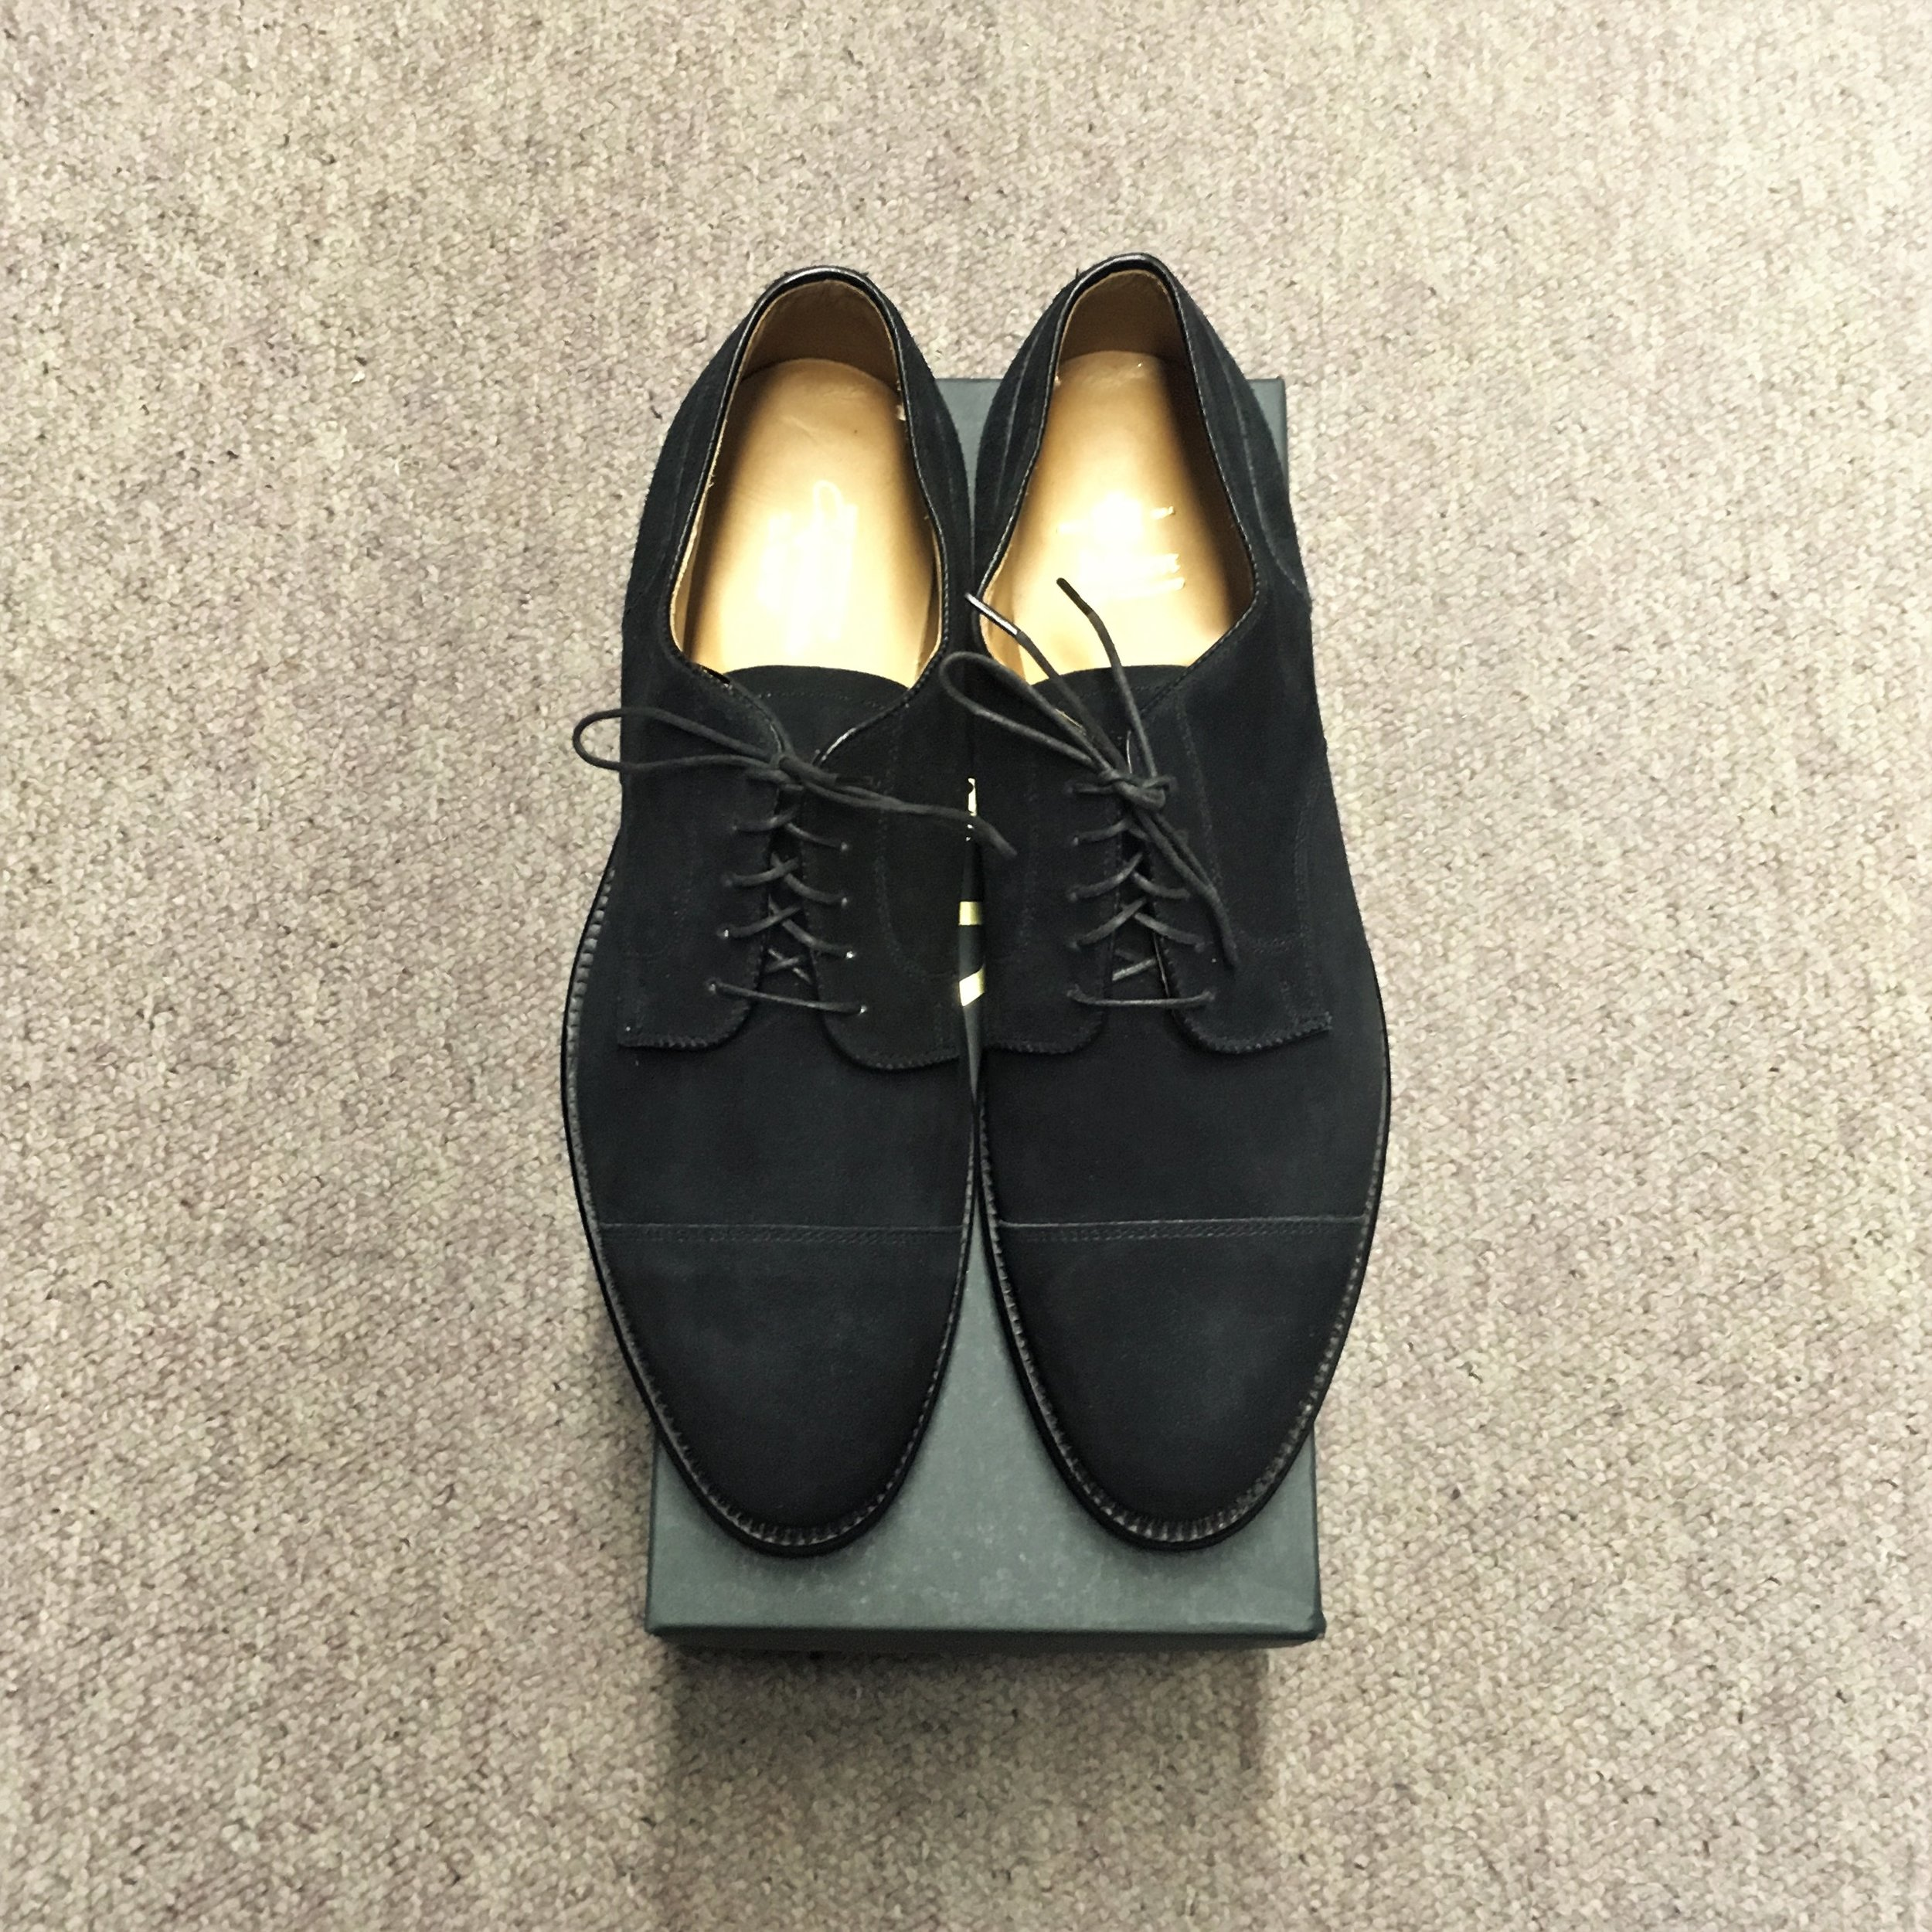 #2183 - Aberdeen LastBlack Smoke Suede - Straight Tip Blucher - Doublet Leather SoleCustom ModelLAST PAIR! SIZES 10 EEEMSRP $569Contact us for Pricing and Availability